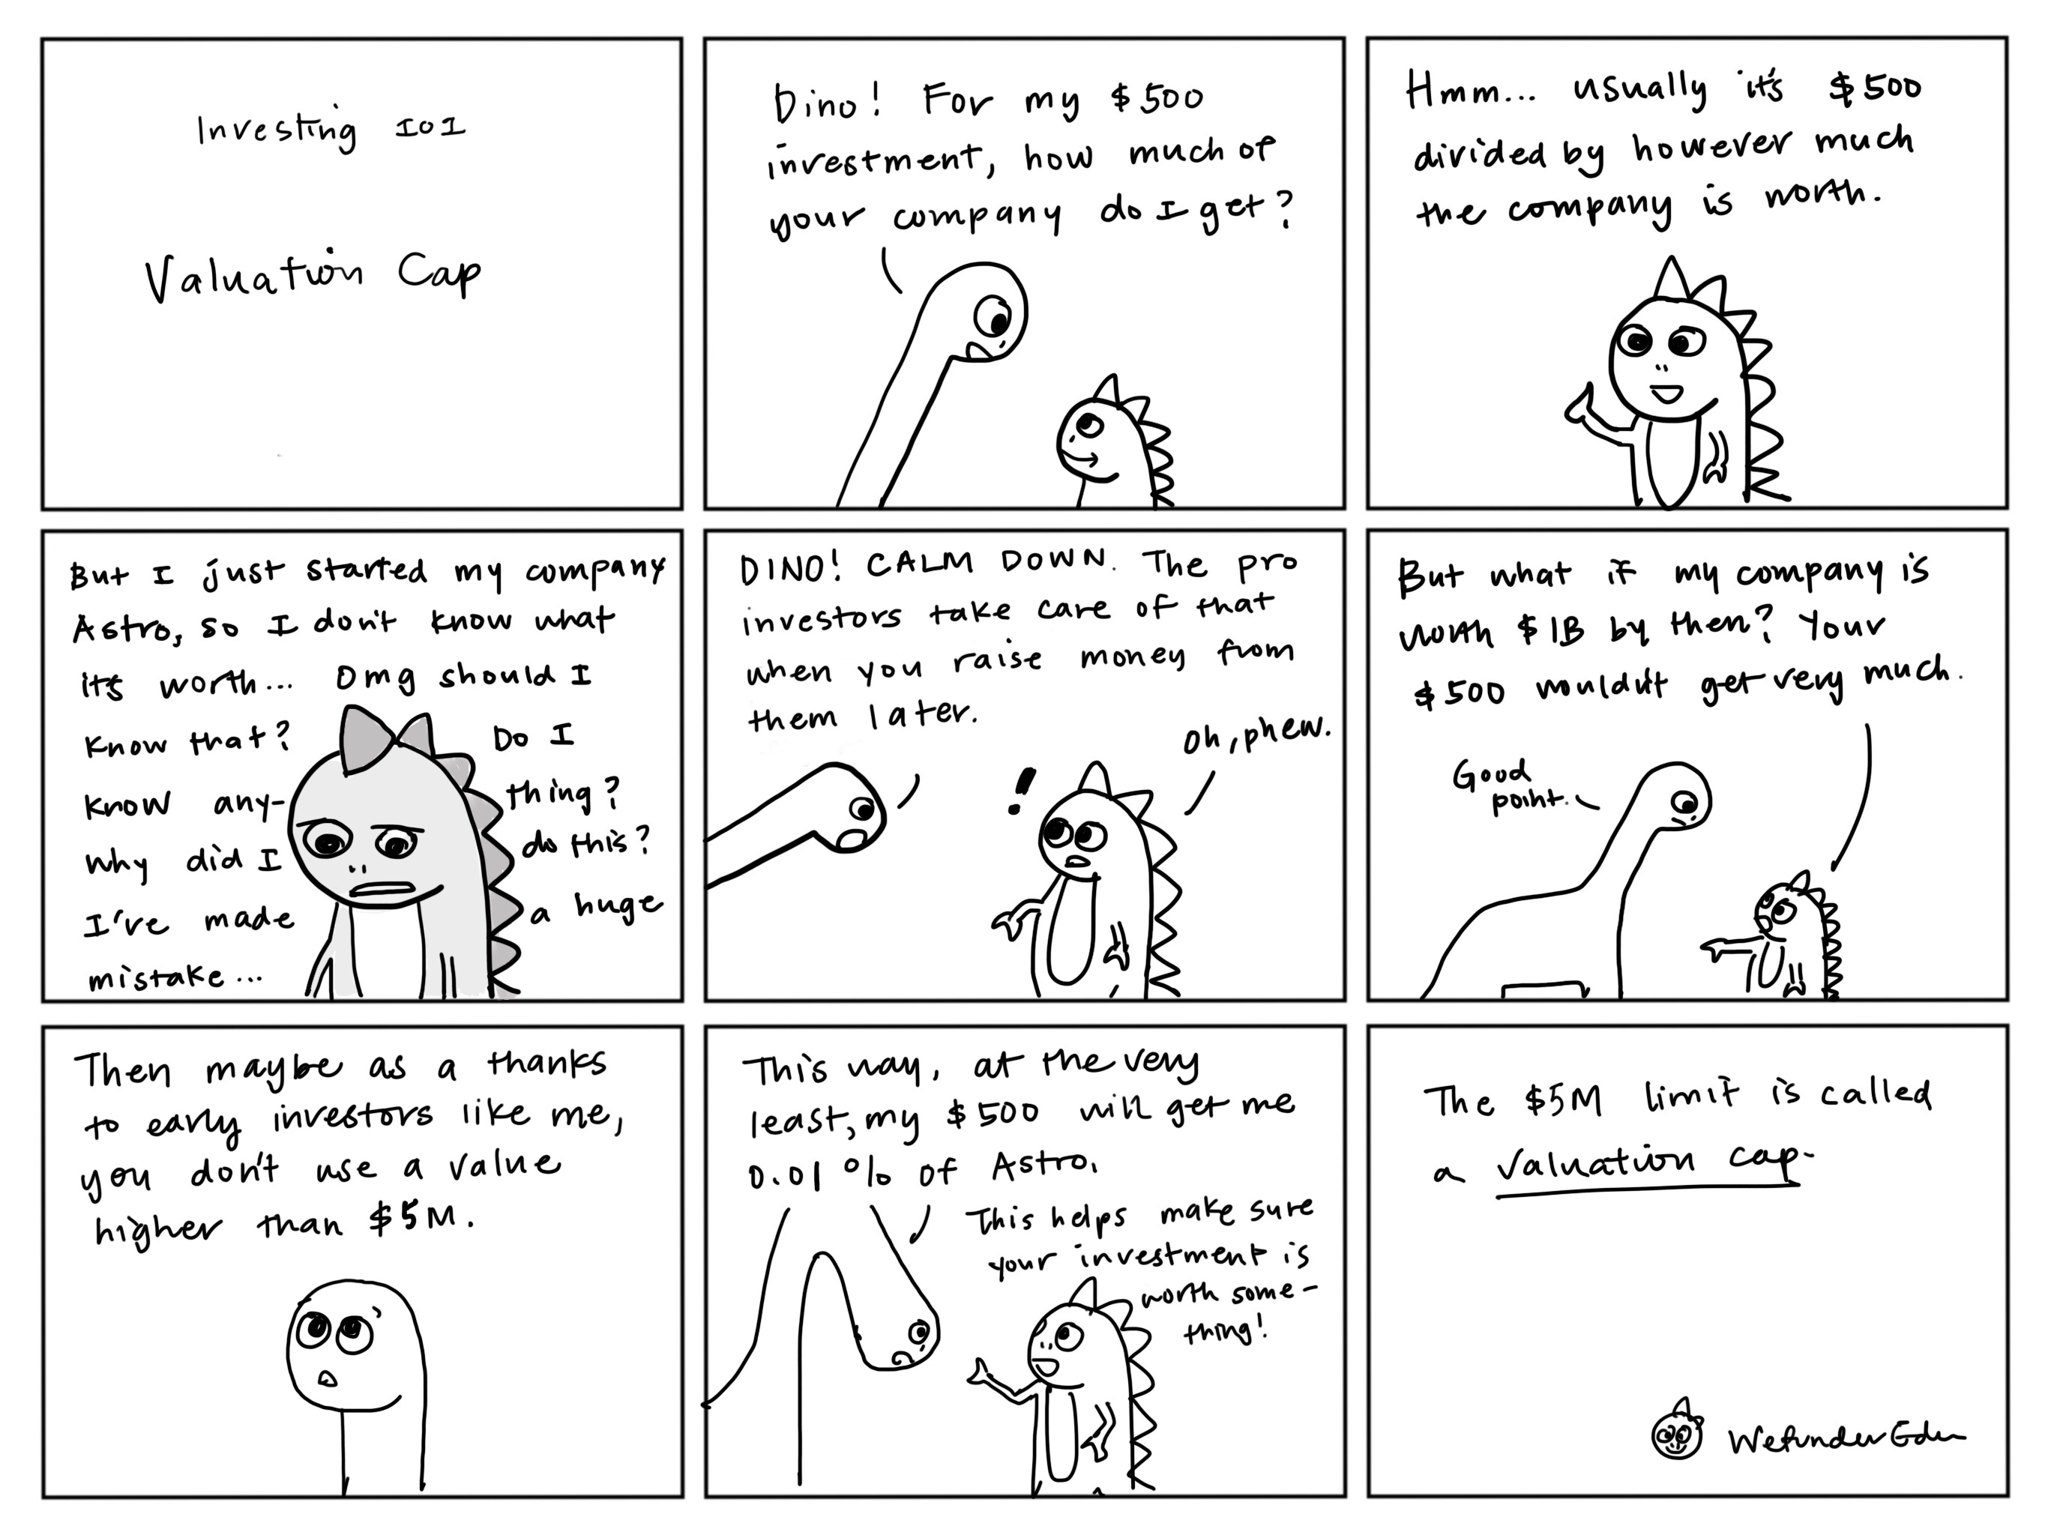 dino_comic_4_valuation_cap.jpg